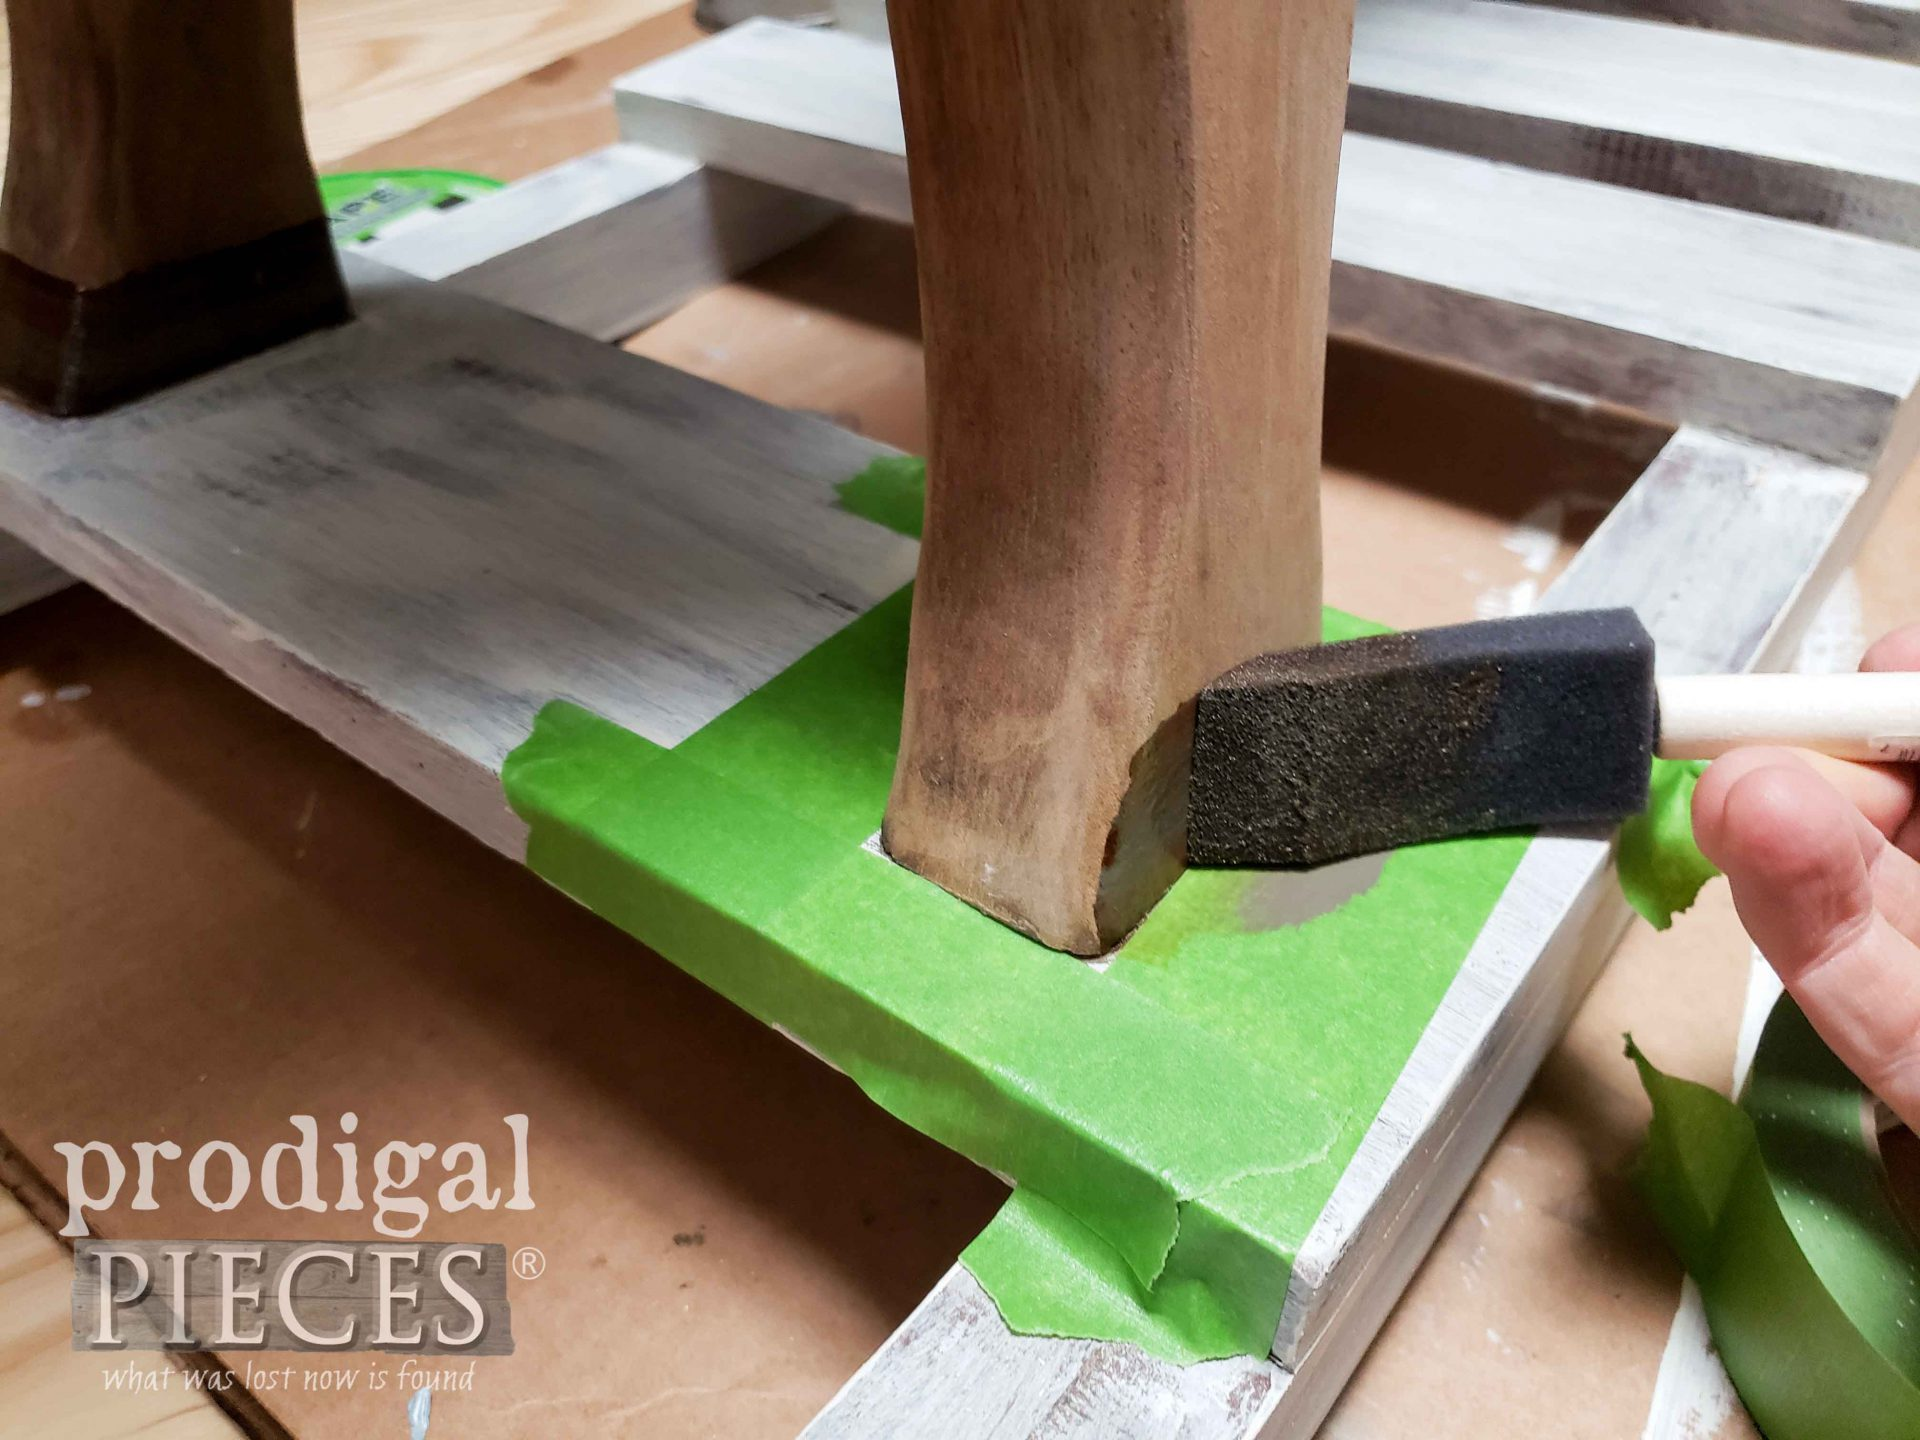 Staining Wooden Rocking Horse Feet | prodigalpieces.com